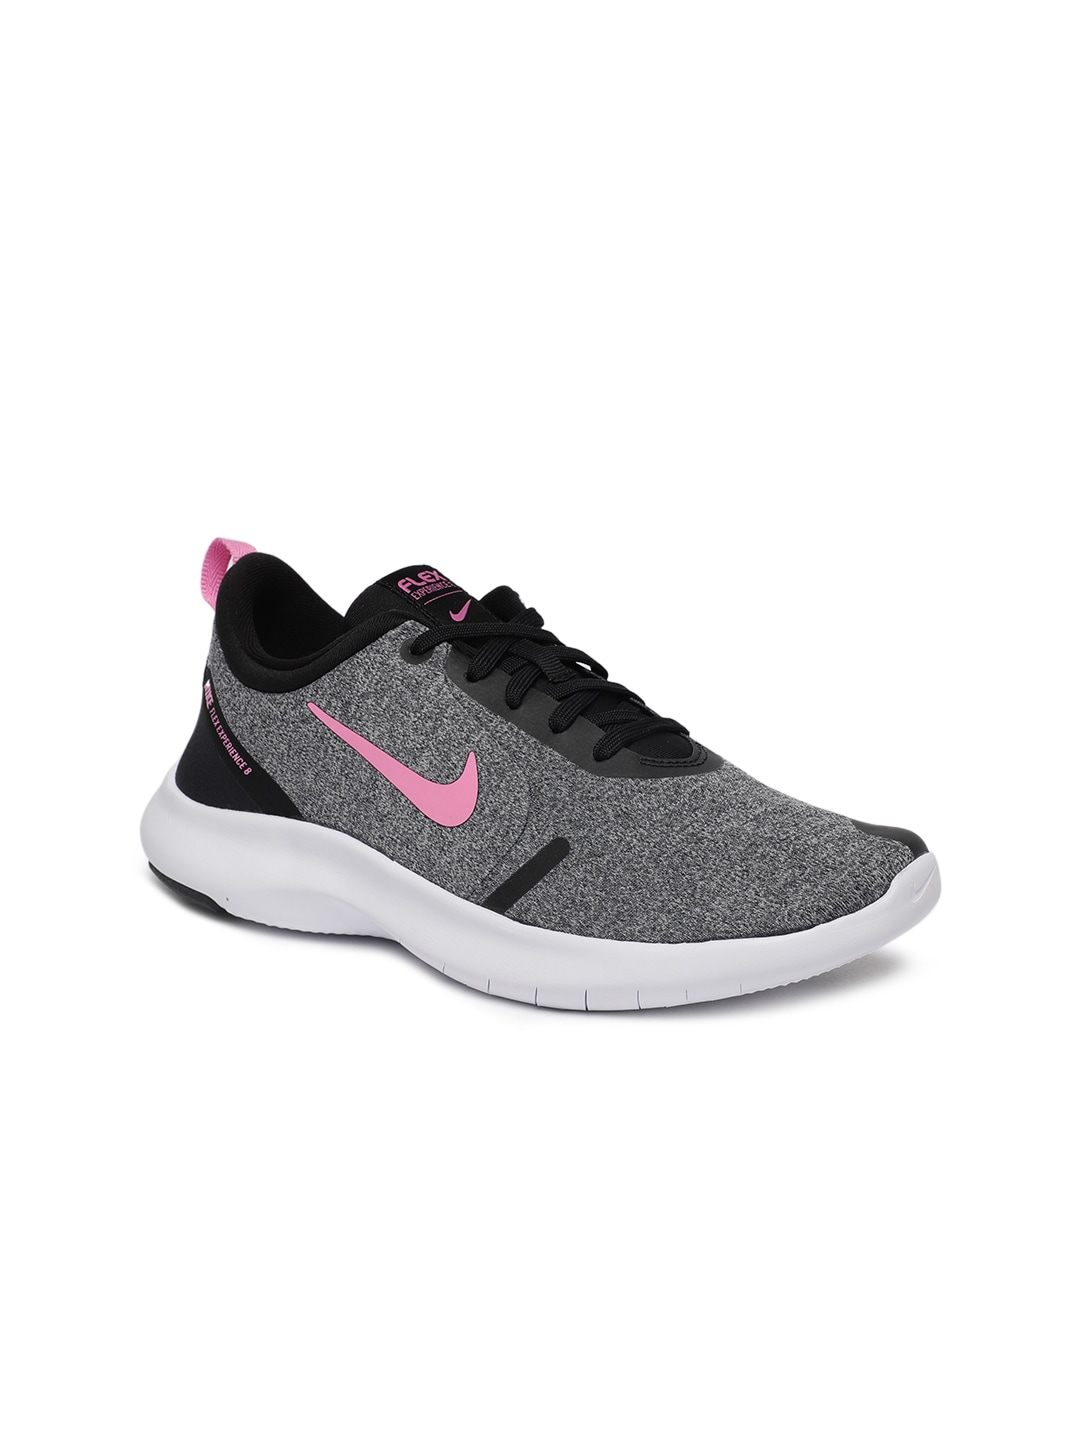 6cc4906a4e39 Nike Sport Shoe - Buy Nike Sport Shoes At Best Price Online